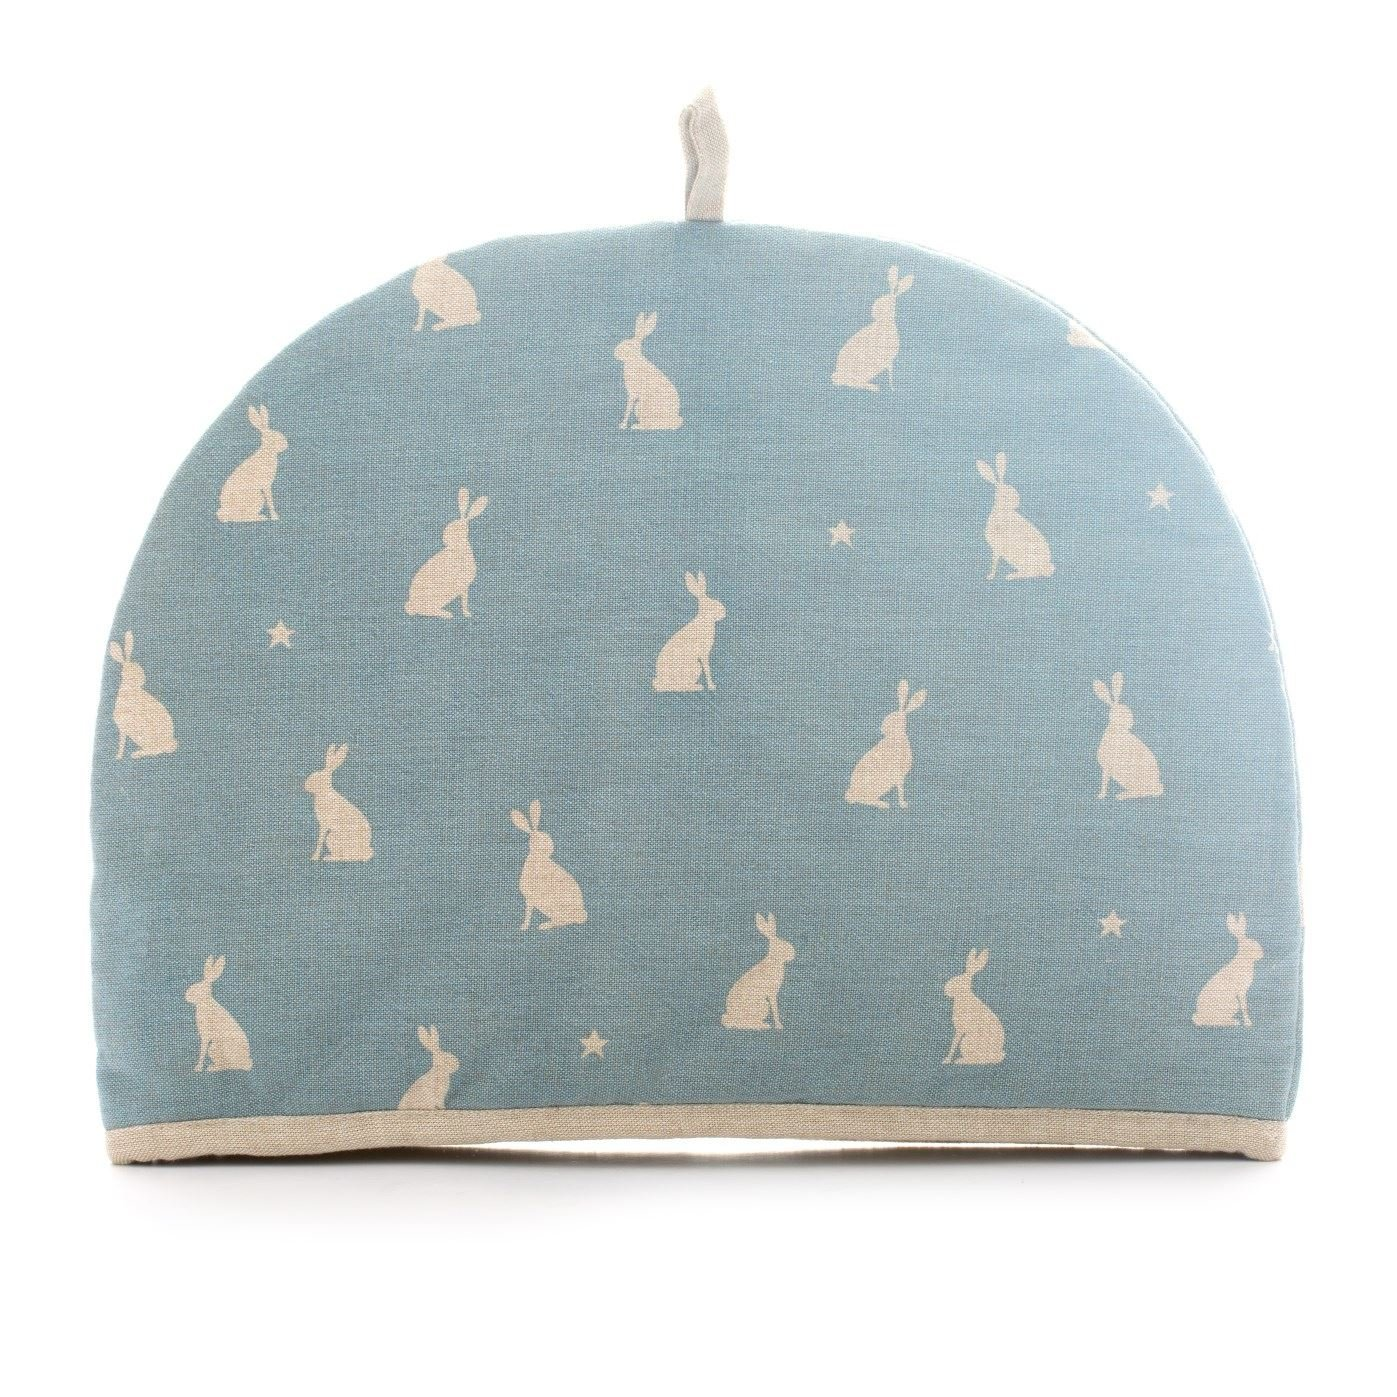 Rushbrookes Stargazing Hare 100% Cotton Small Tea Cozy